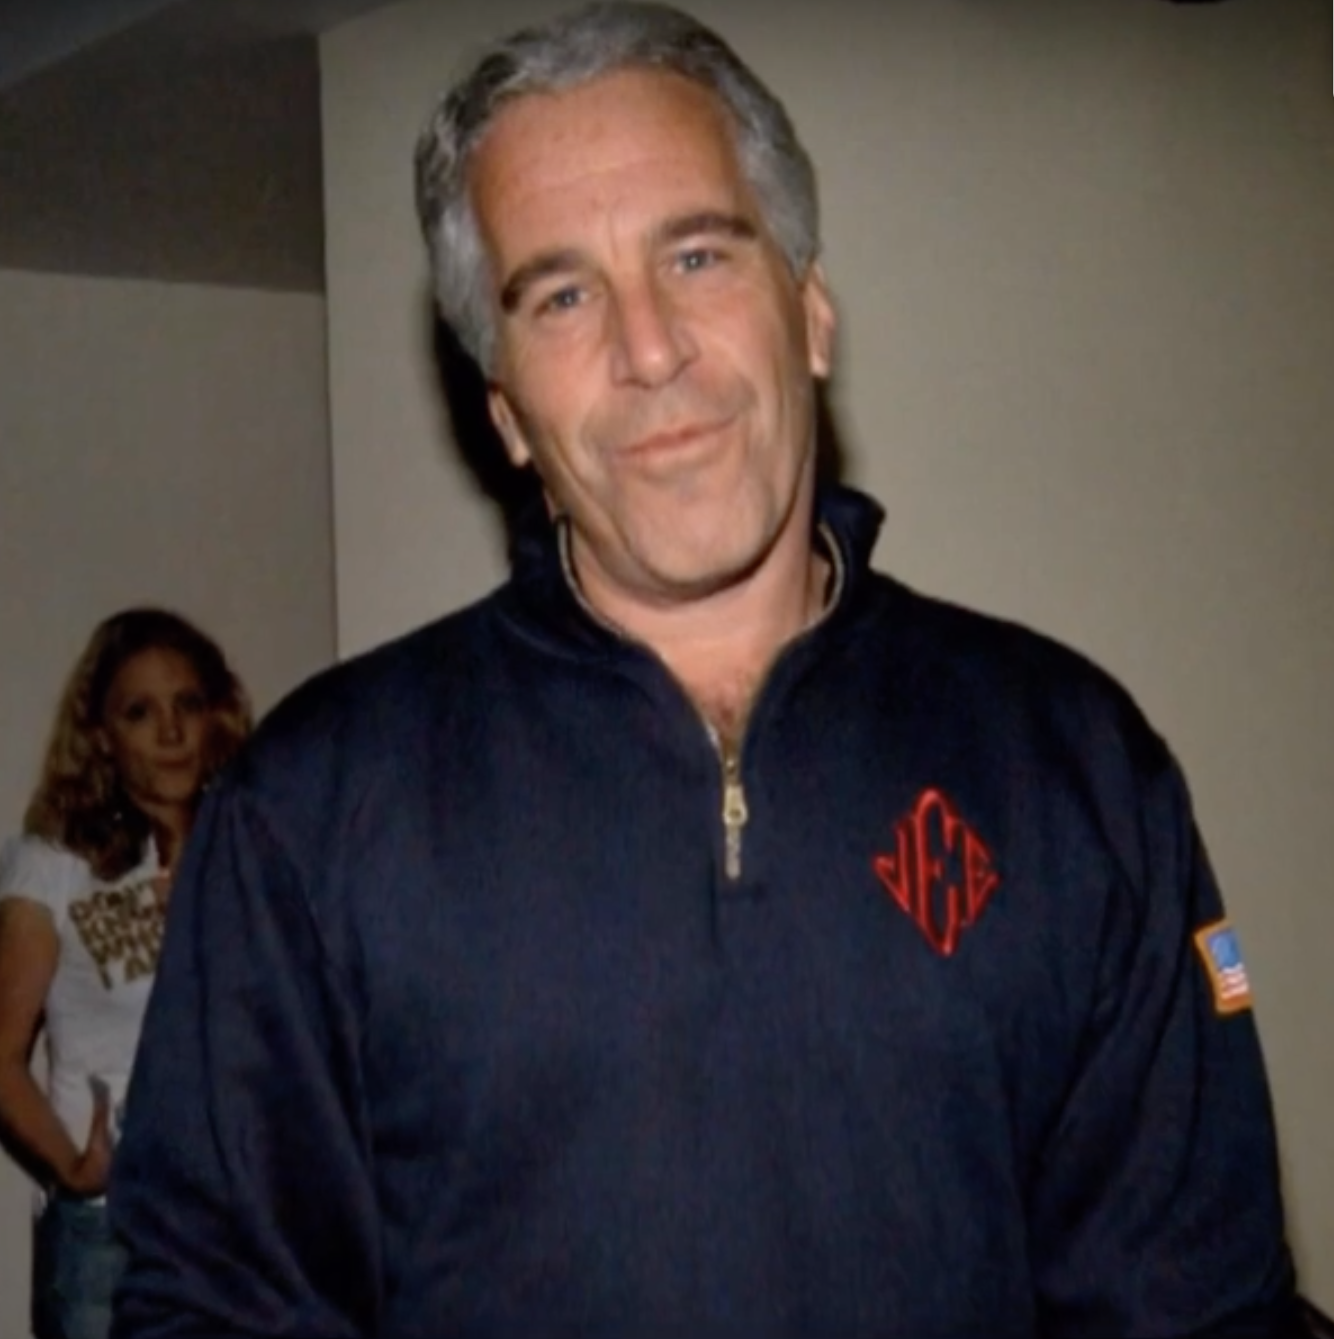 Billionaire Jeffrey Epstein was arrested Saturday and pleaded not guilty Monday to charges of sex trafficking minors. (Screenshot Youtube/MSNBC)